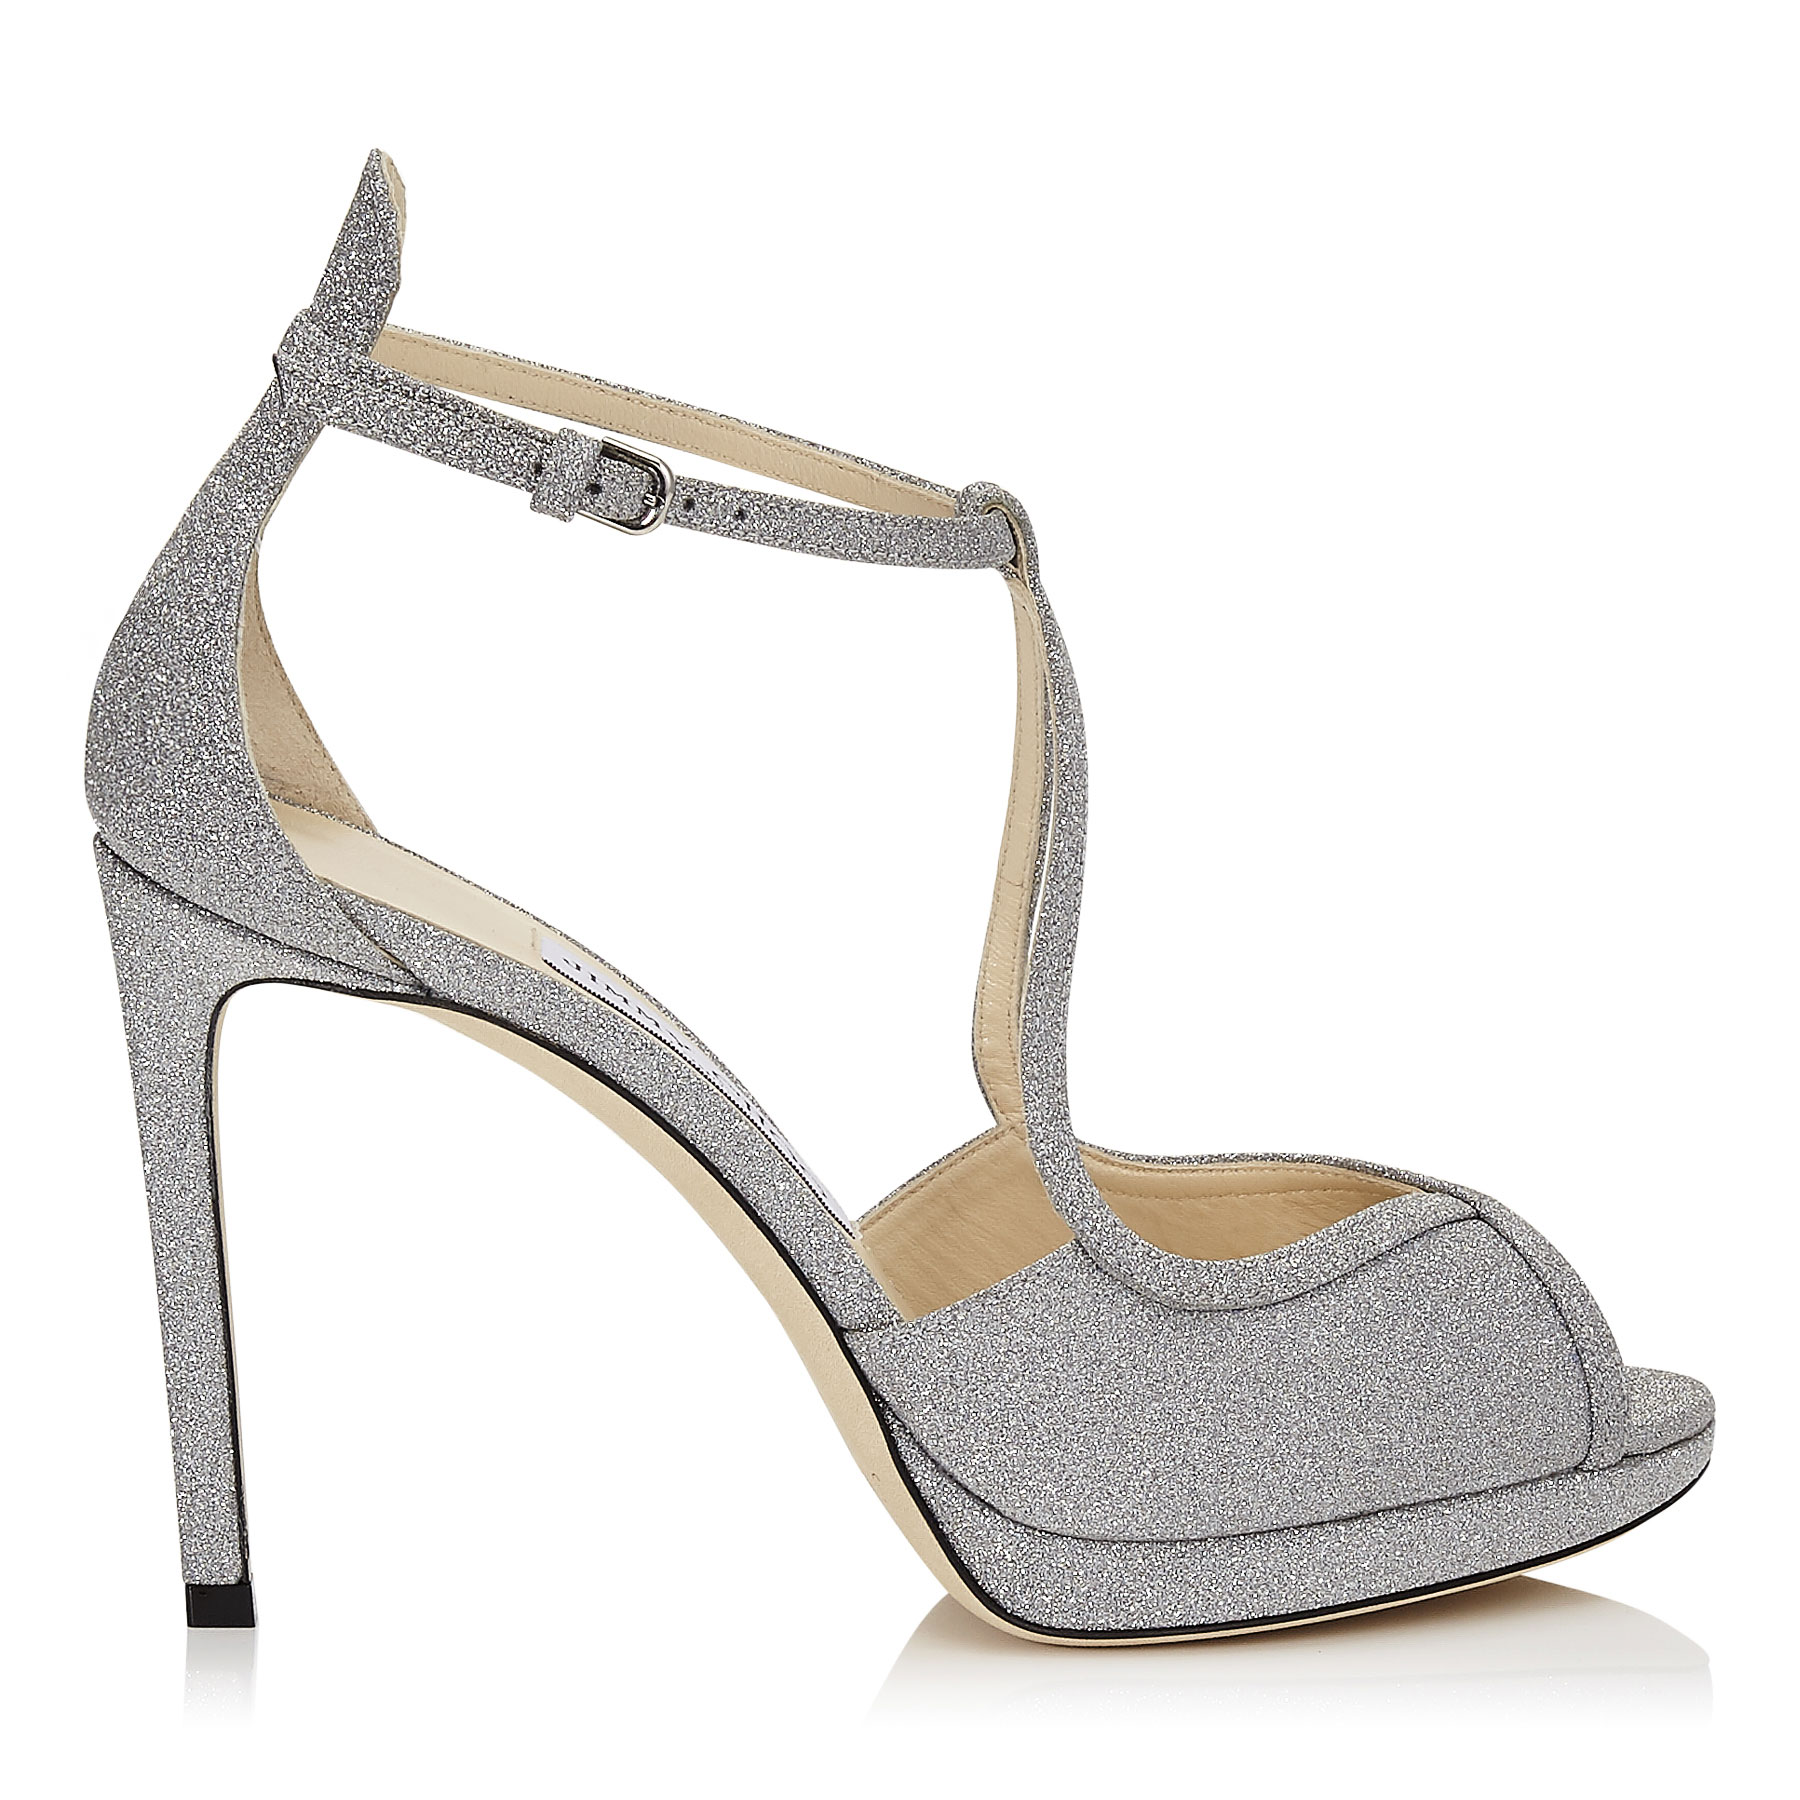 FAWNE 100 Silver Fine Glitter Leather Sandals by Jimmy Choo